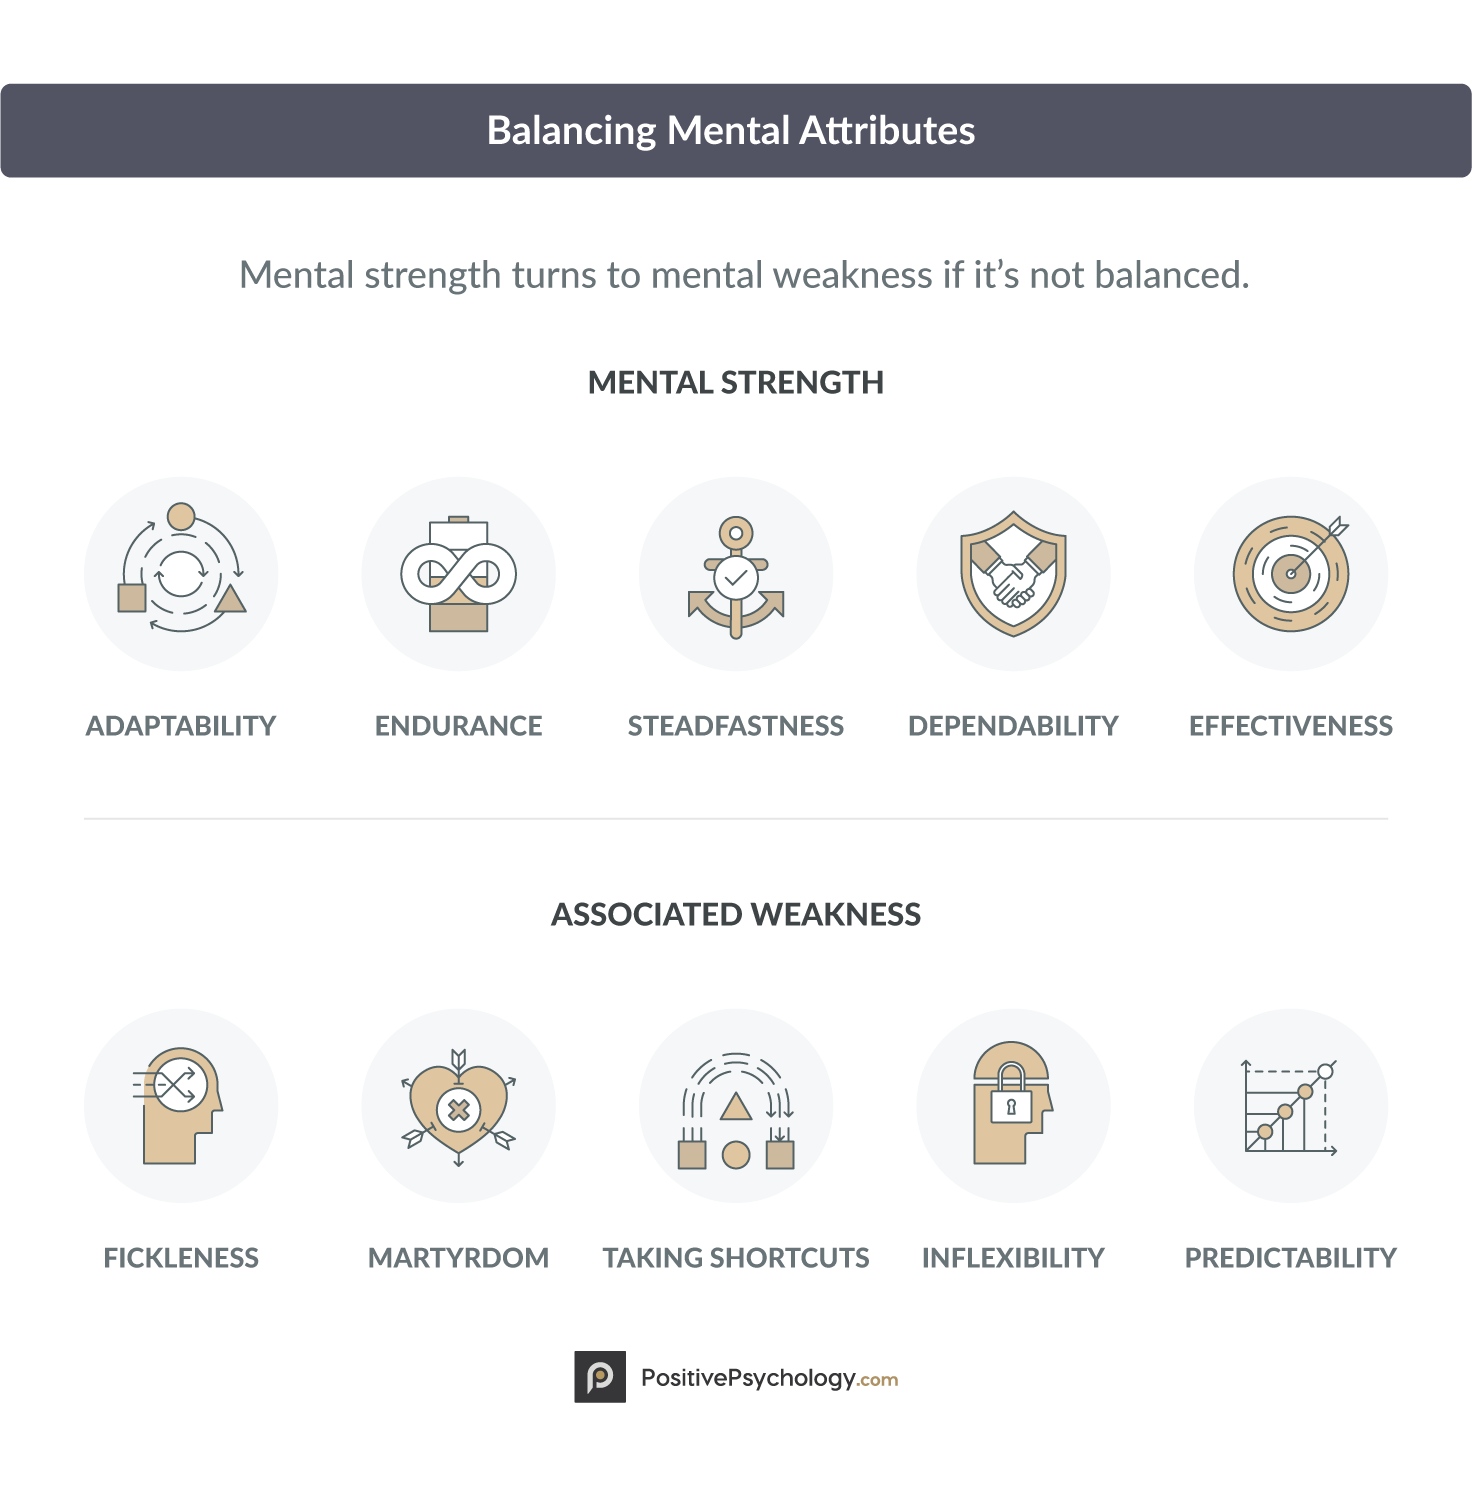 Balancing Mental Attributes